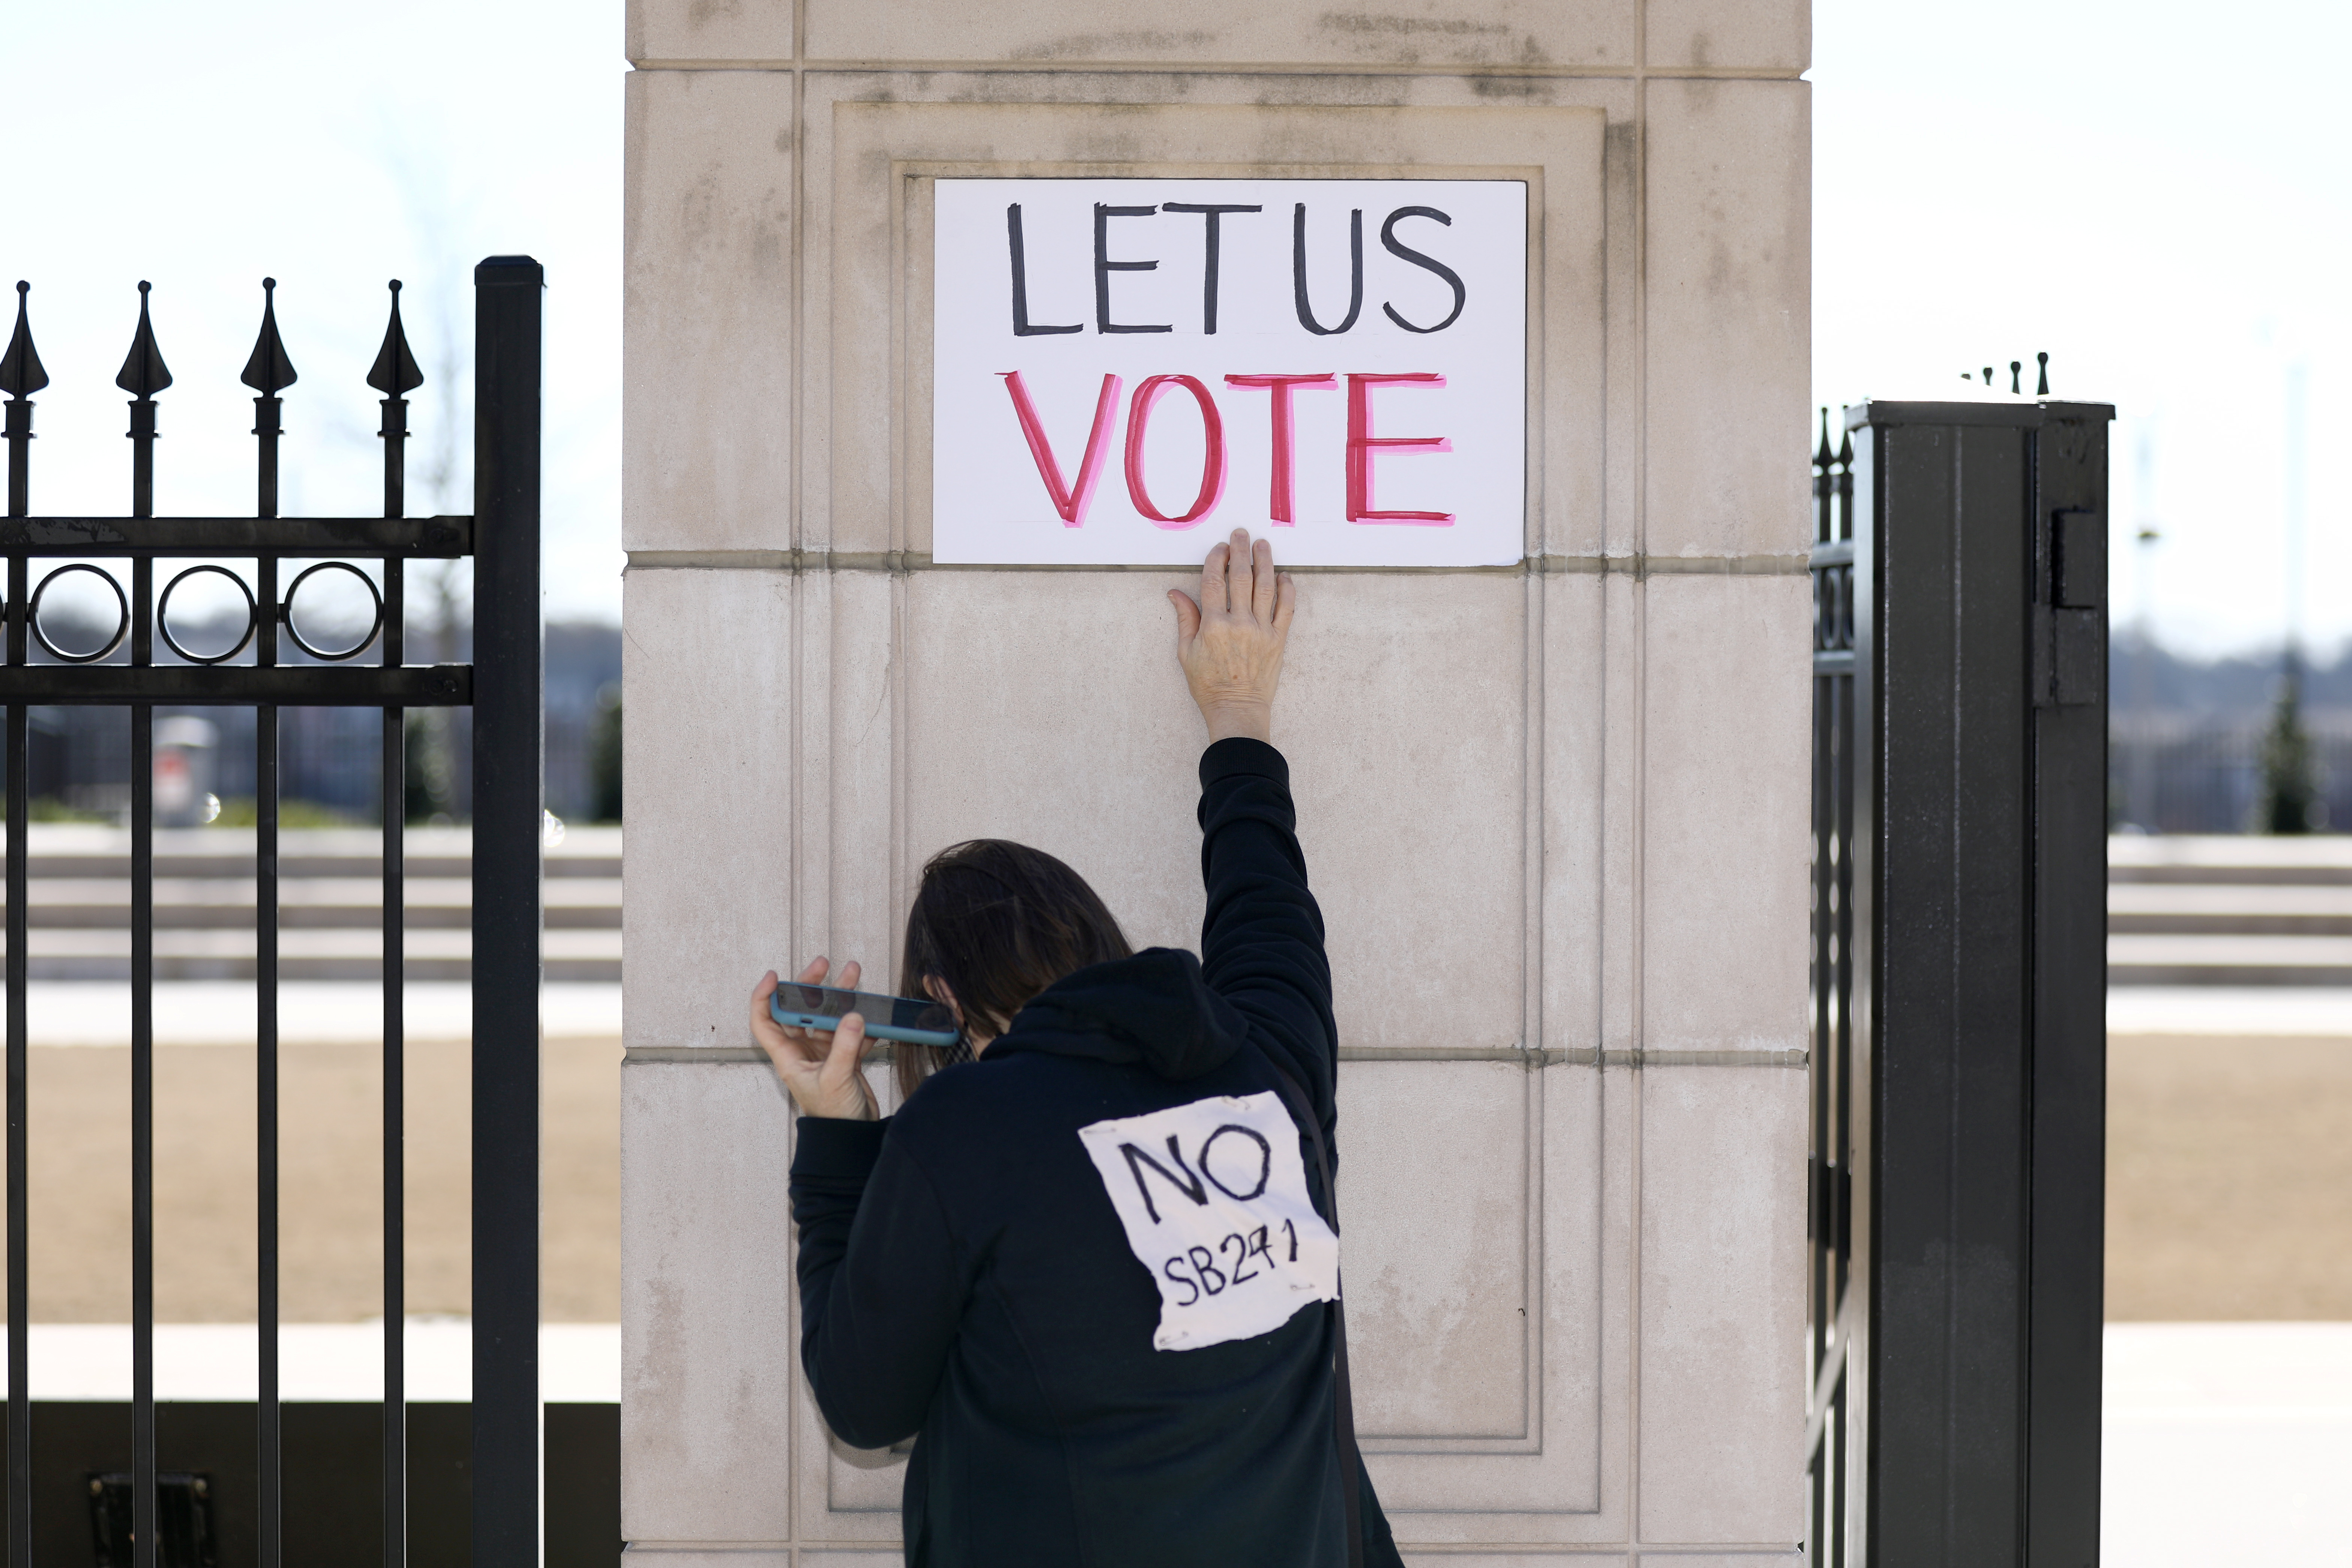 A protester attends a gathering outside of the Georgia State Capitol to protest HB 531, which would place tougher restrictions on voting in Georgia, in Atlanta, Georgia, U.S. March 4, 2021. REUTERS/Dustin Chambers